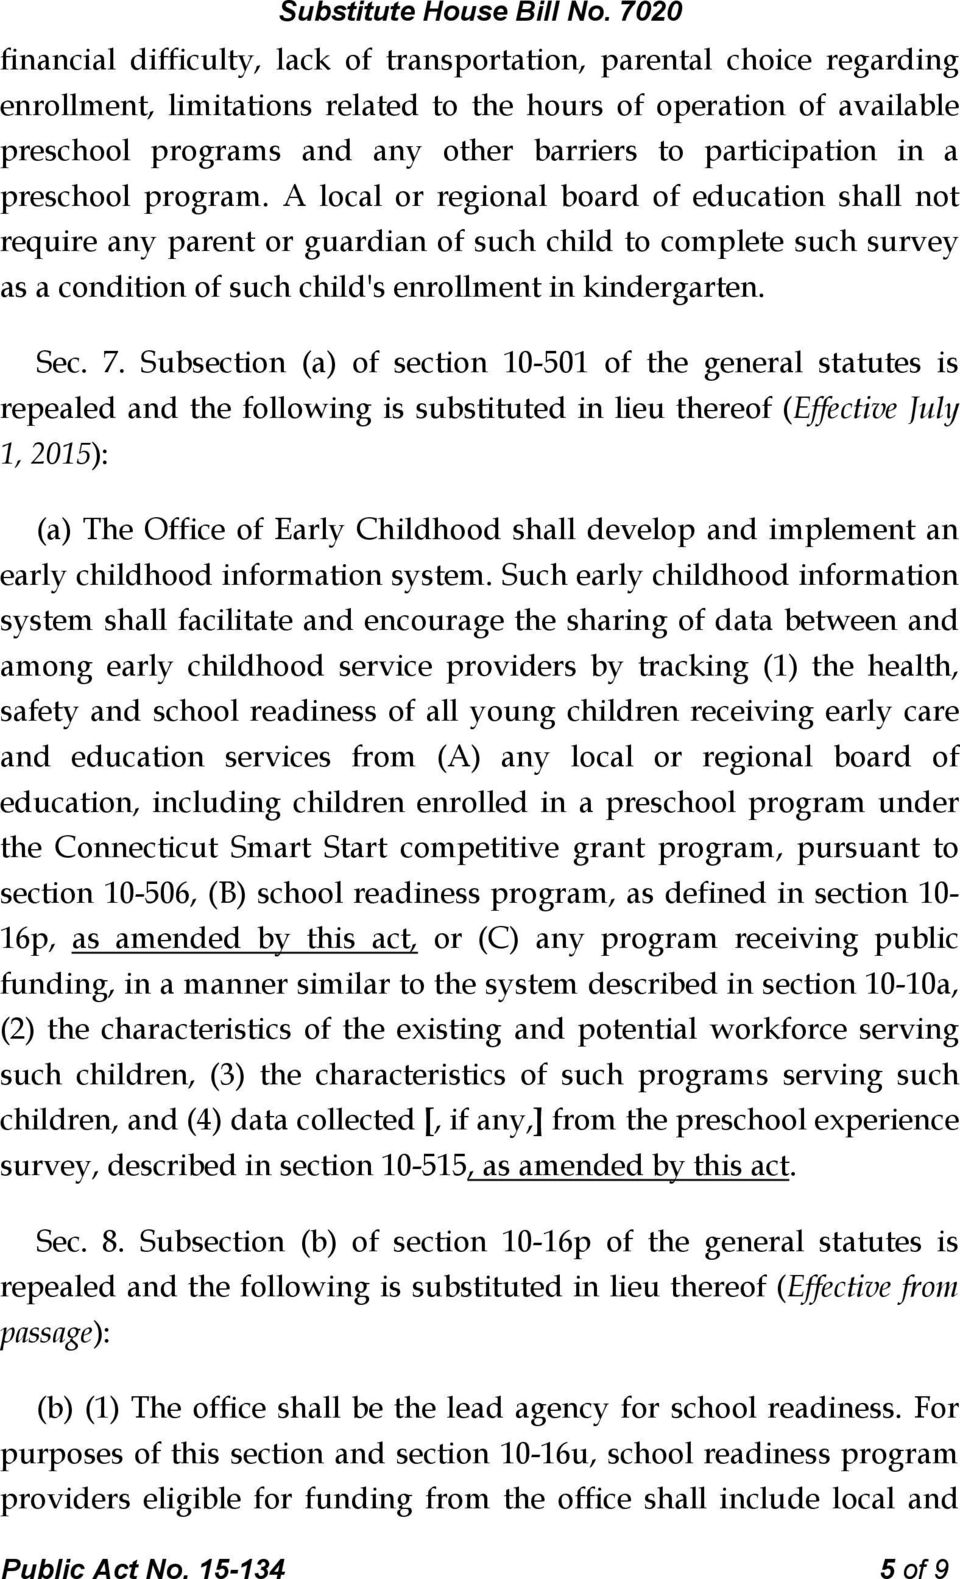 A local or regional board of education shall not require any parent or guardian of such child to complete such survey as a condition of such child's enrollment in kindergarten. Sec. 7.